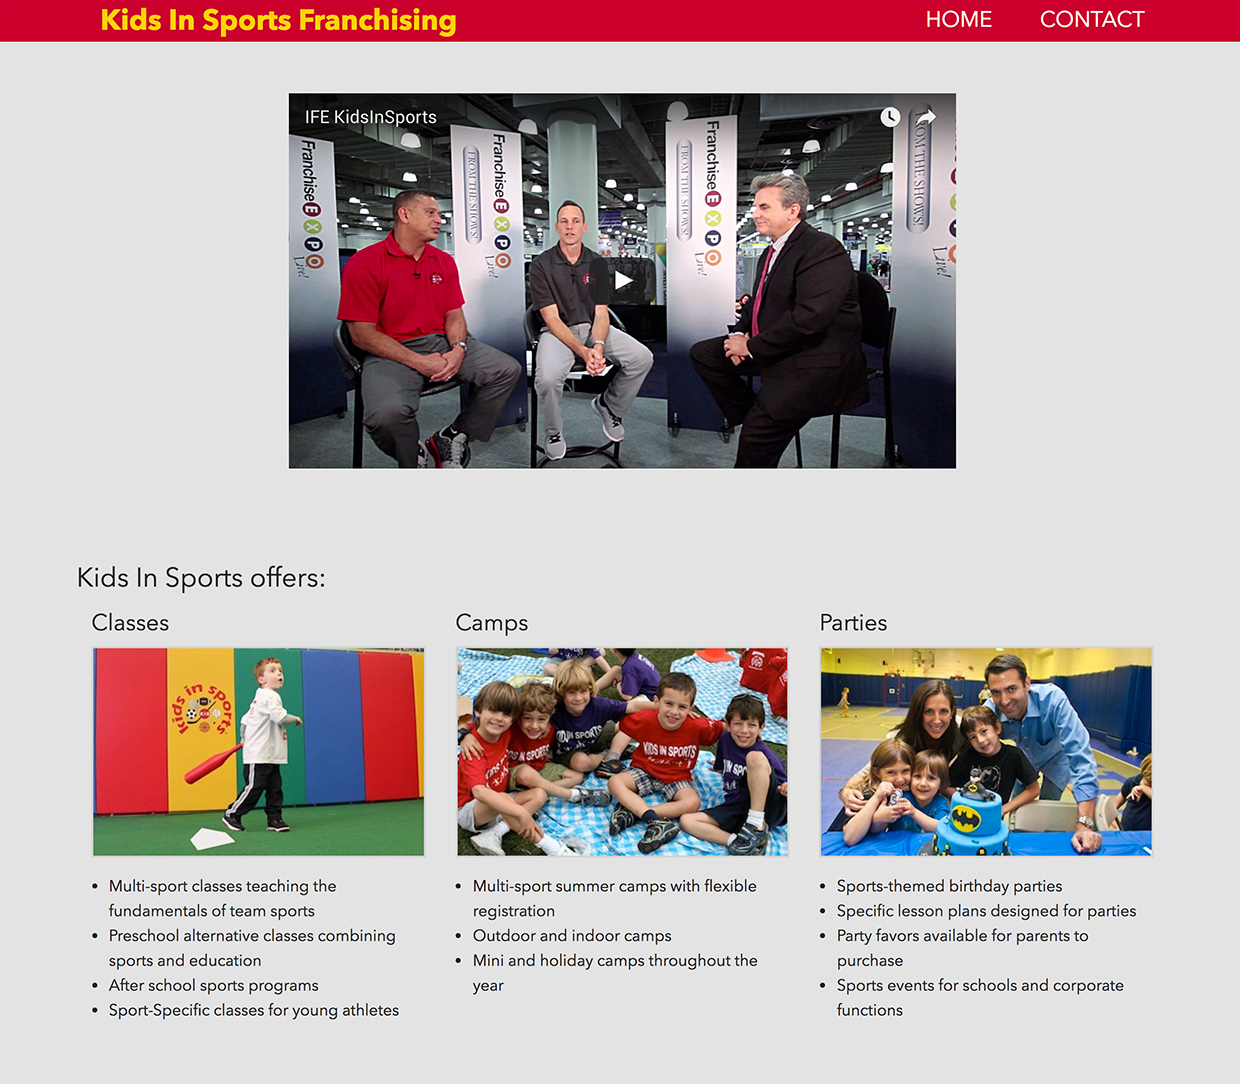 Kids In Sports: Kids in Sports Franchising